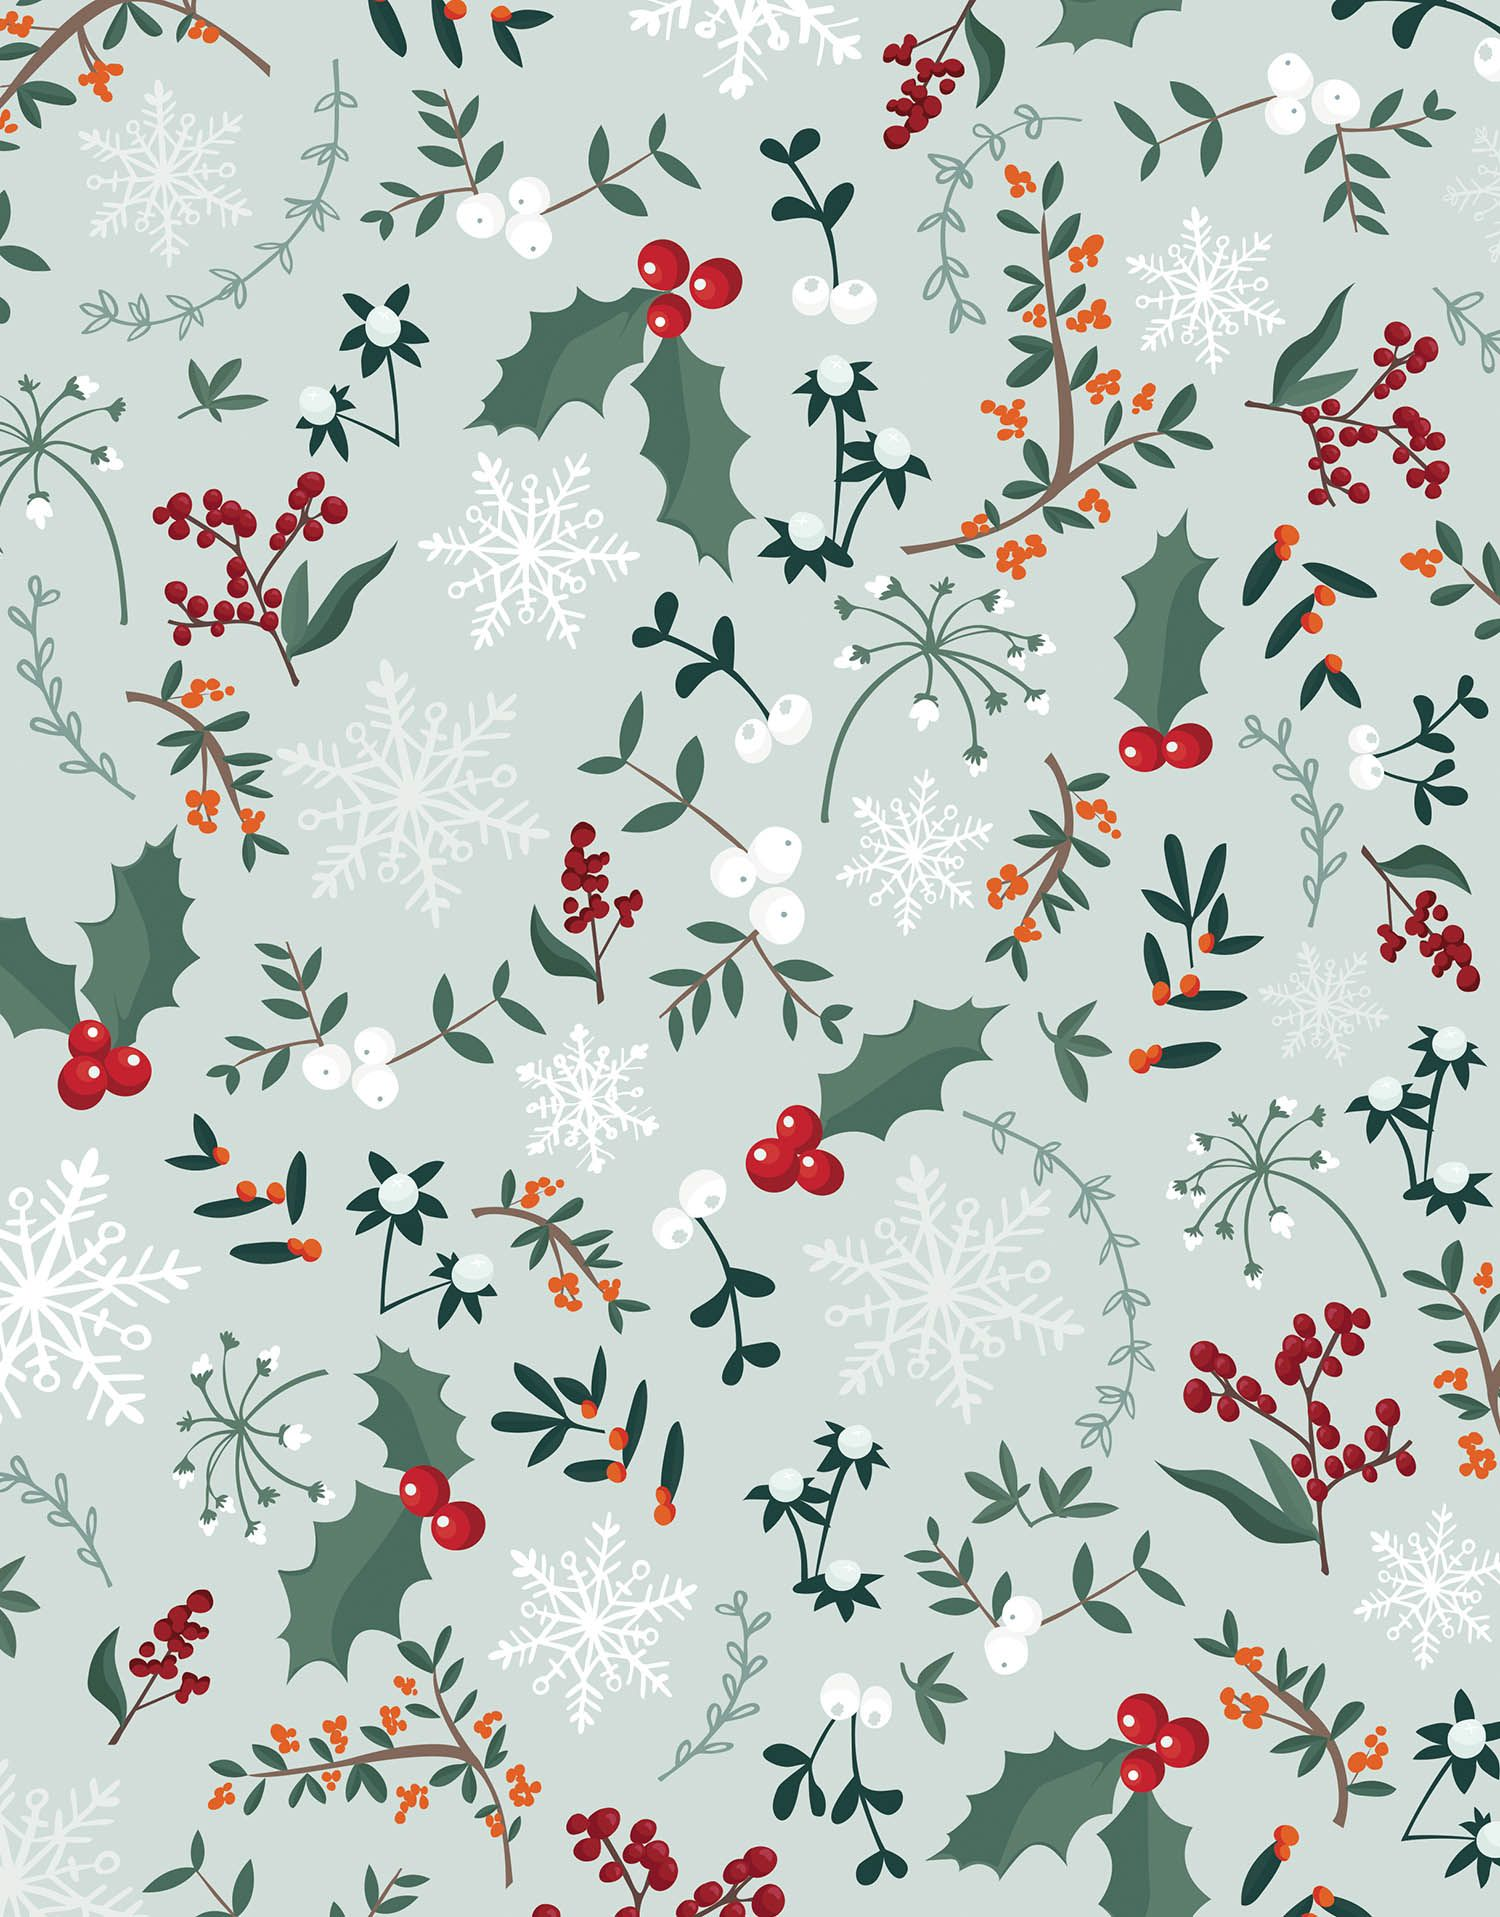 Christmas Pattern Festive Holly Berries Wallpaper Iphone Christmas Christmas Wallpaper Backgrounds Christmas Background